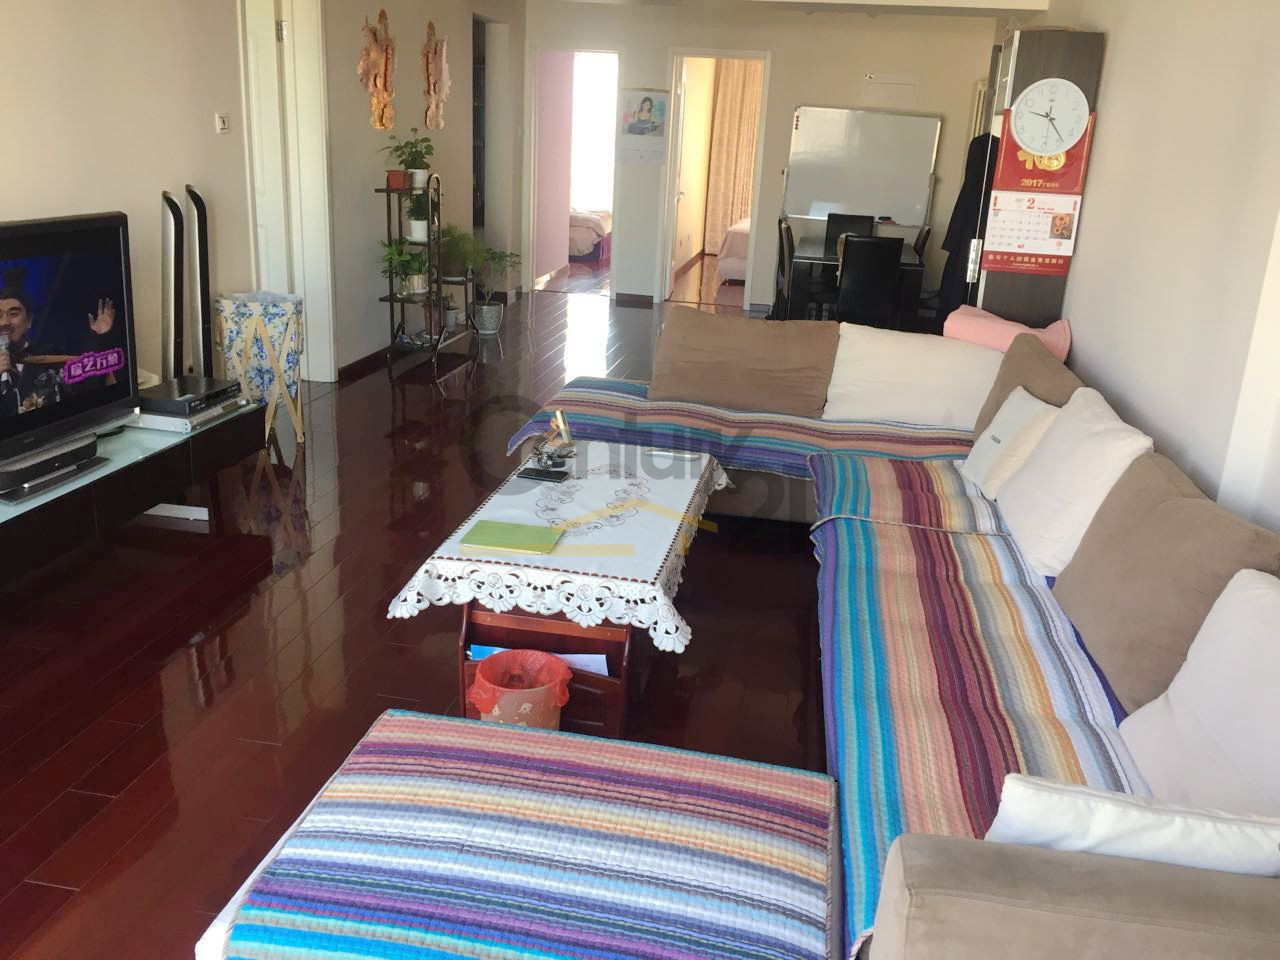 3br in lido area, crystal apartment, nice and clean